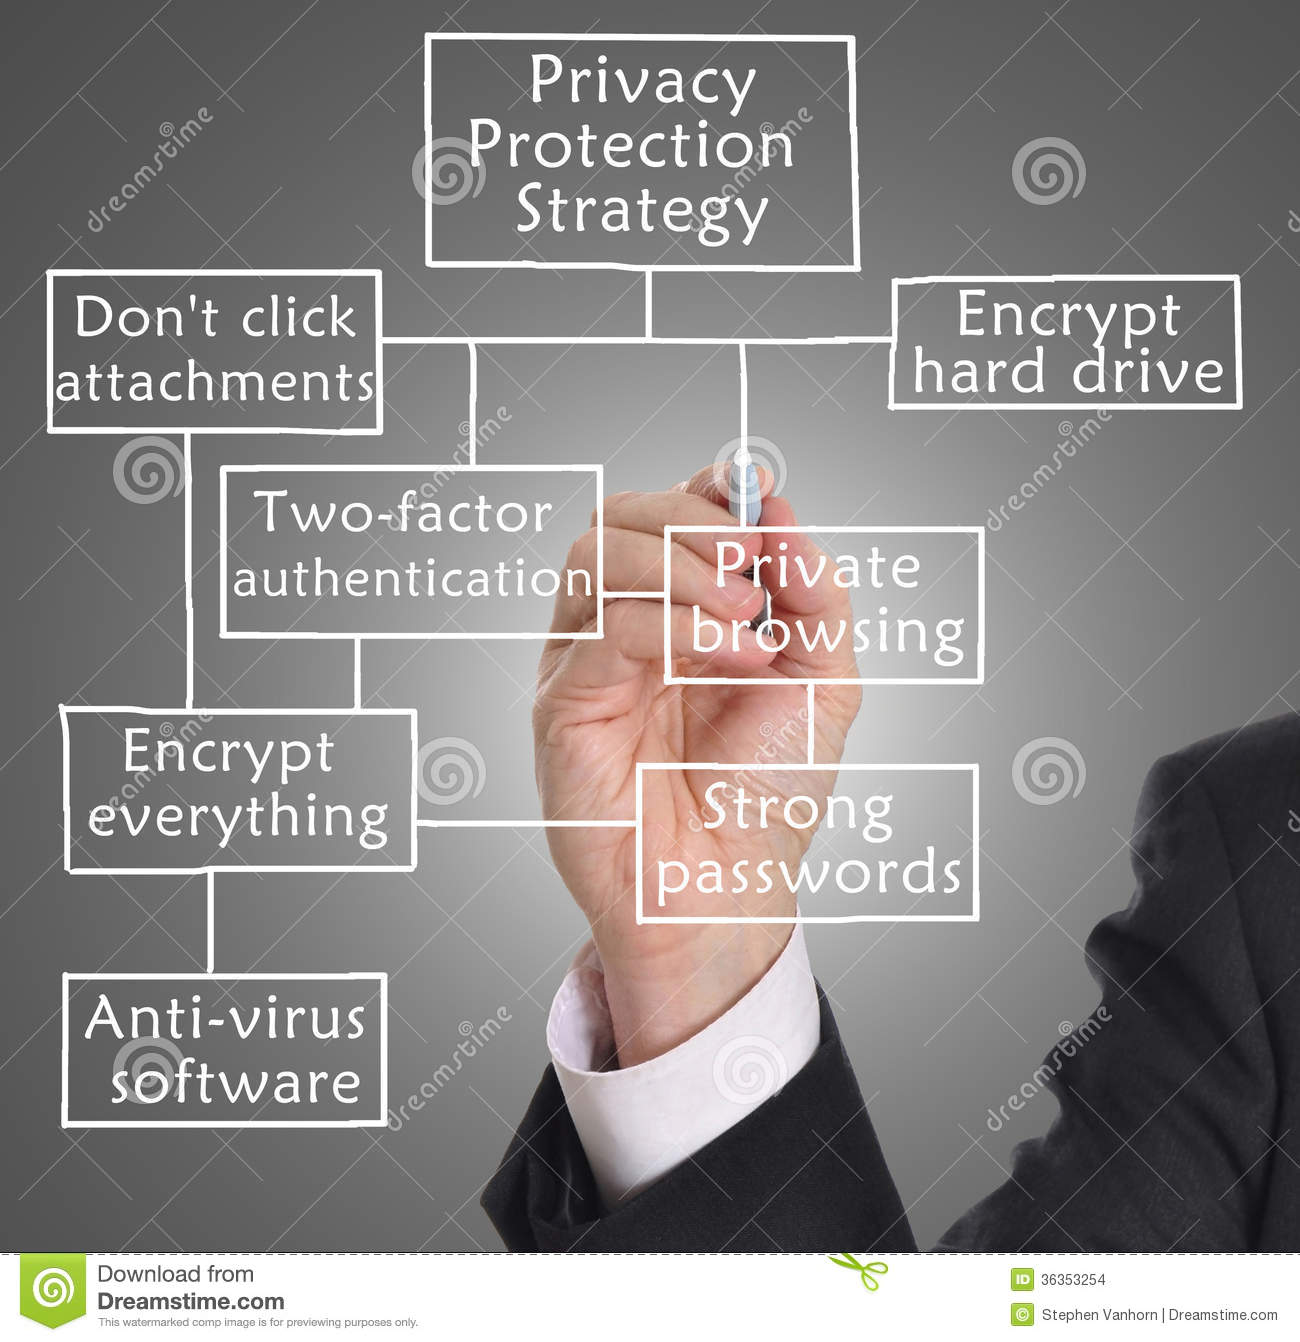 how to draw a network diagram s plan wiring privacy protection stock images - image: 36353254